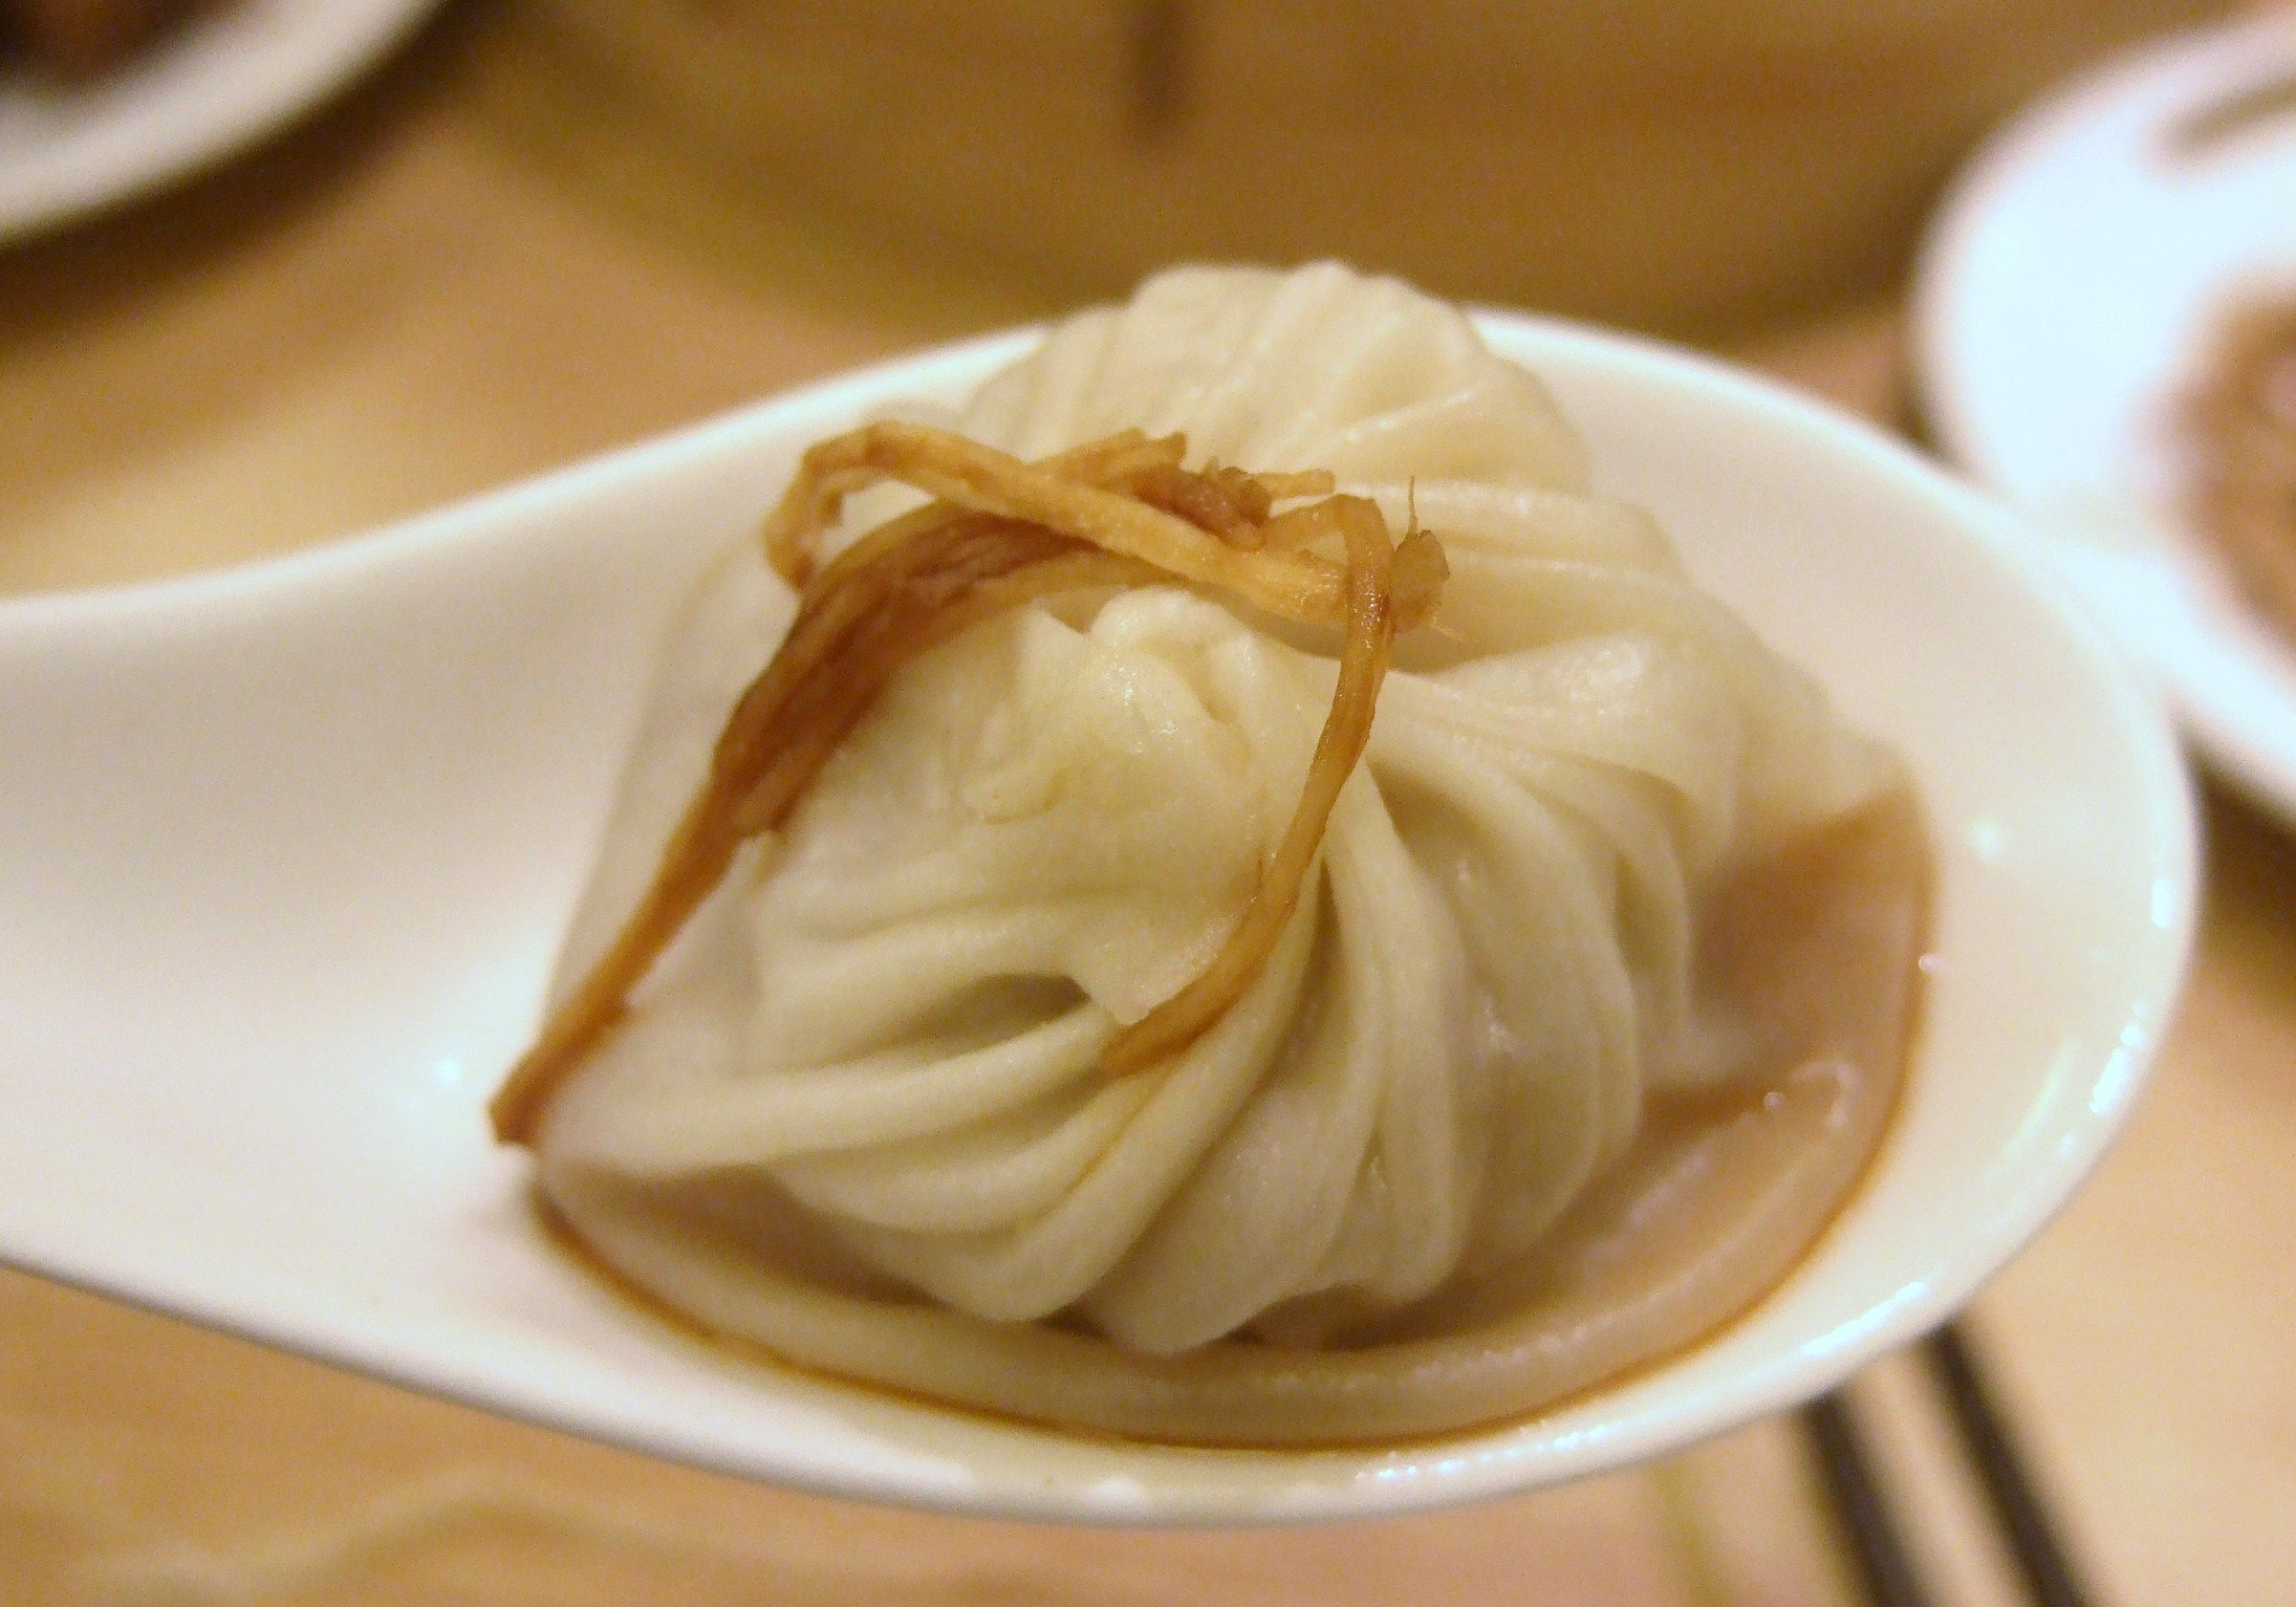 Delicious soup dumplings at the famous Din Tai Fung in Taipei, Taiwan.